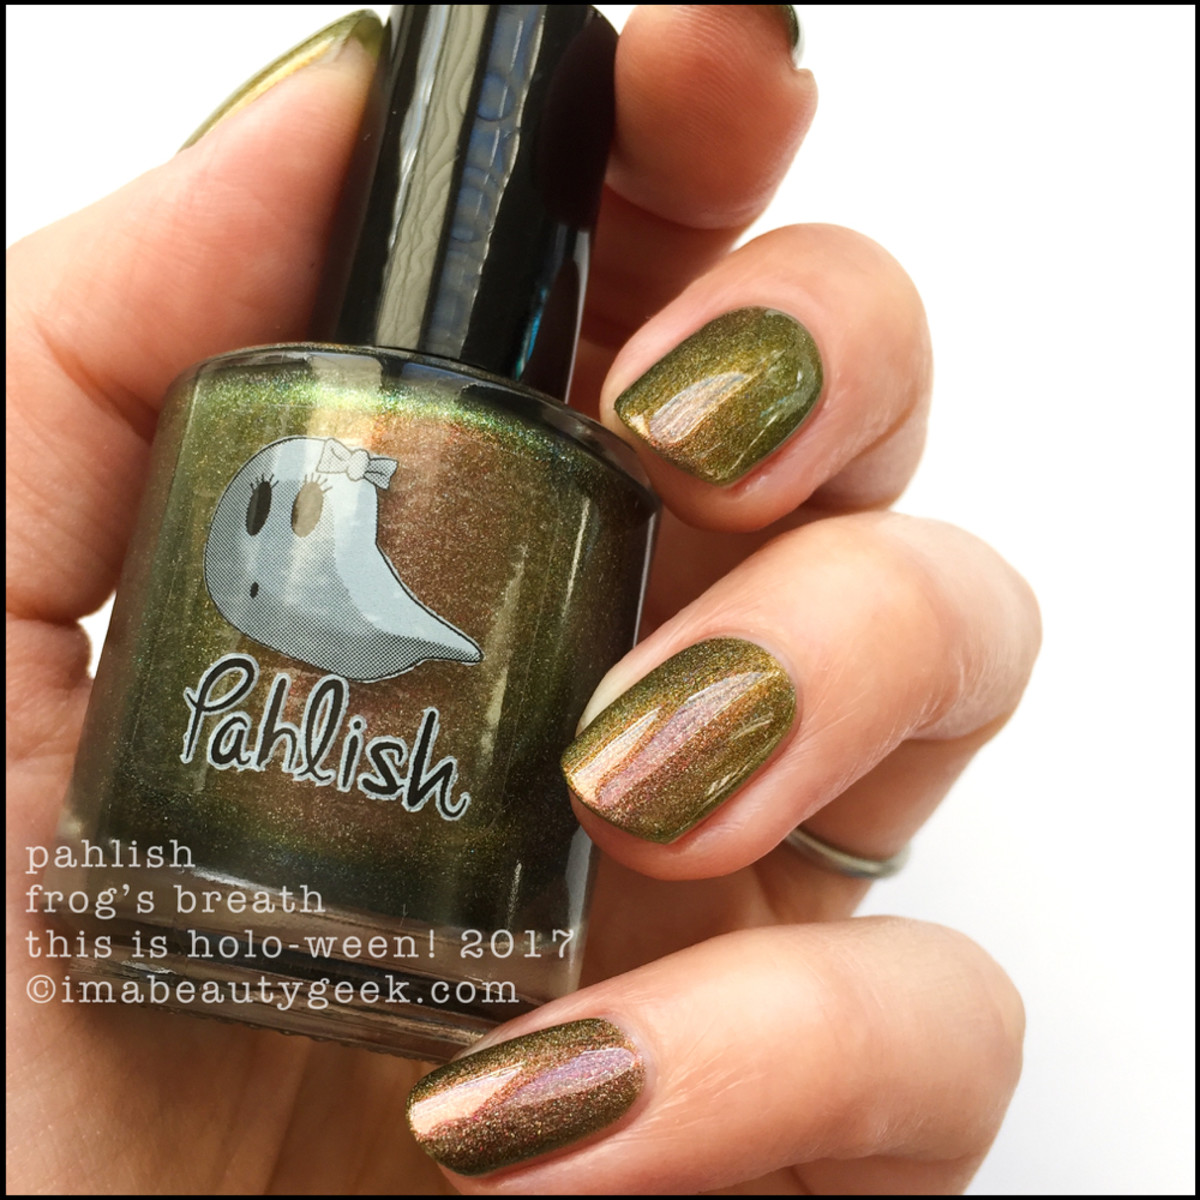 Pahlish Frog's Breath - This is Holo-ween! 2017